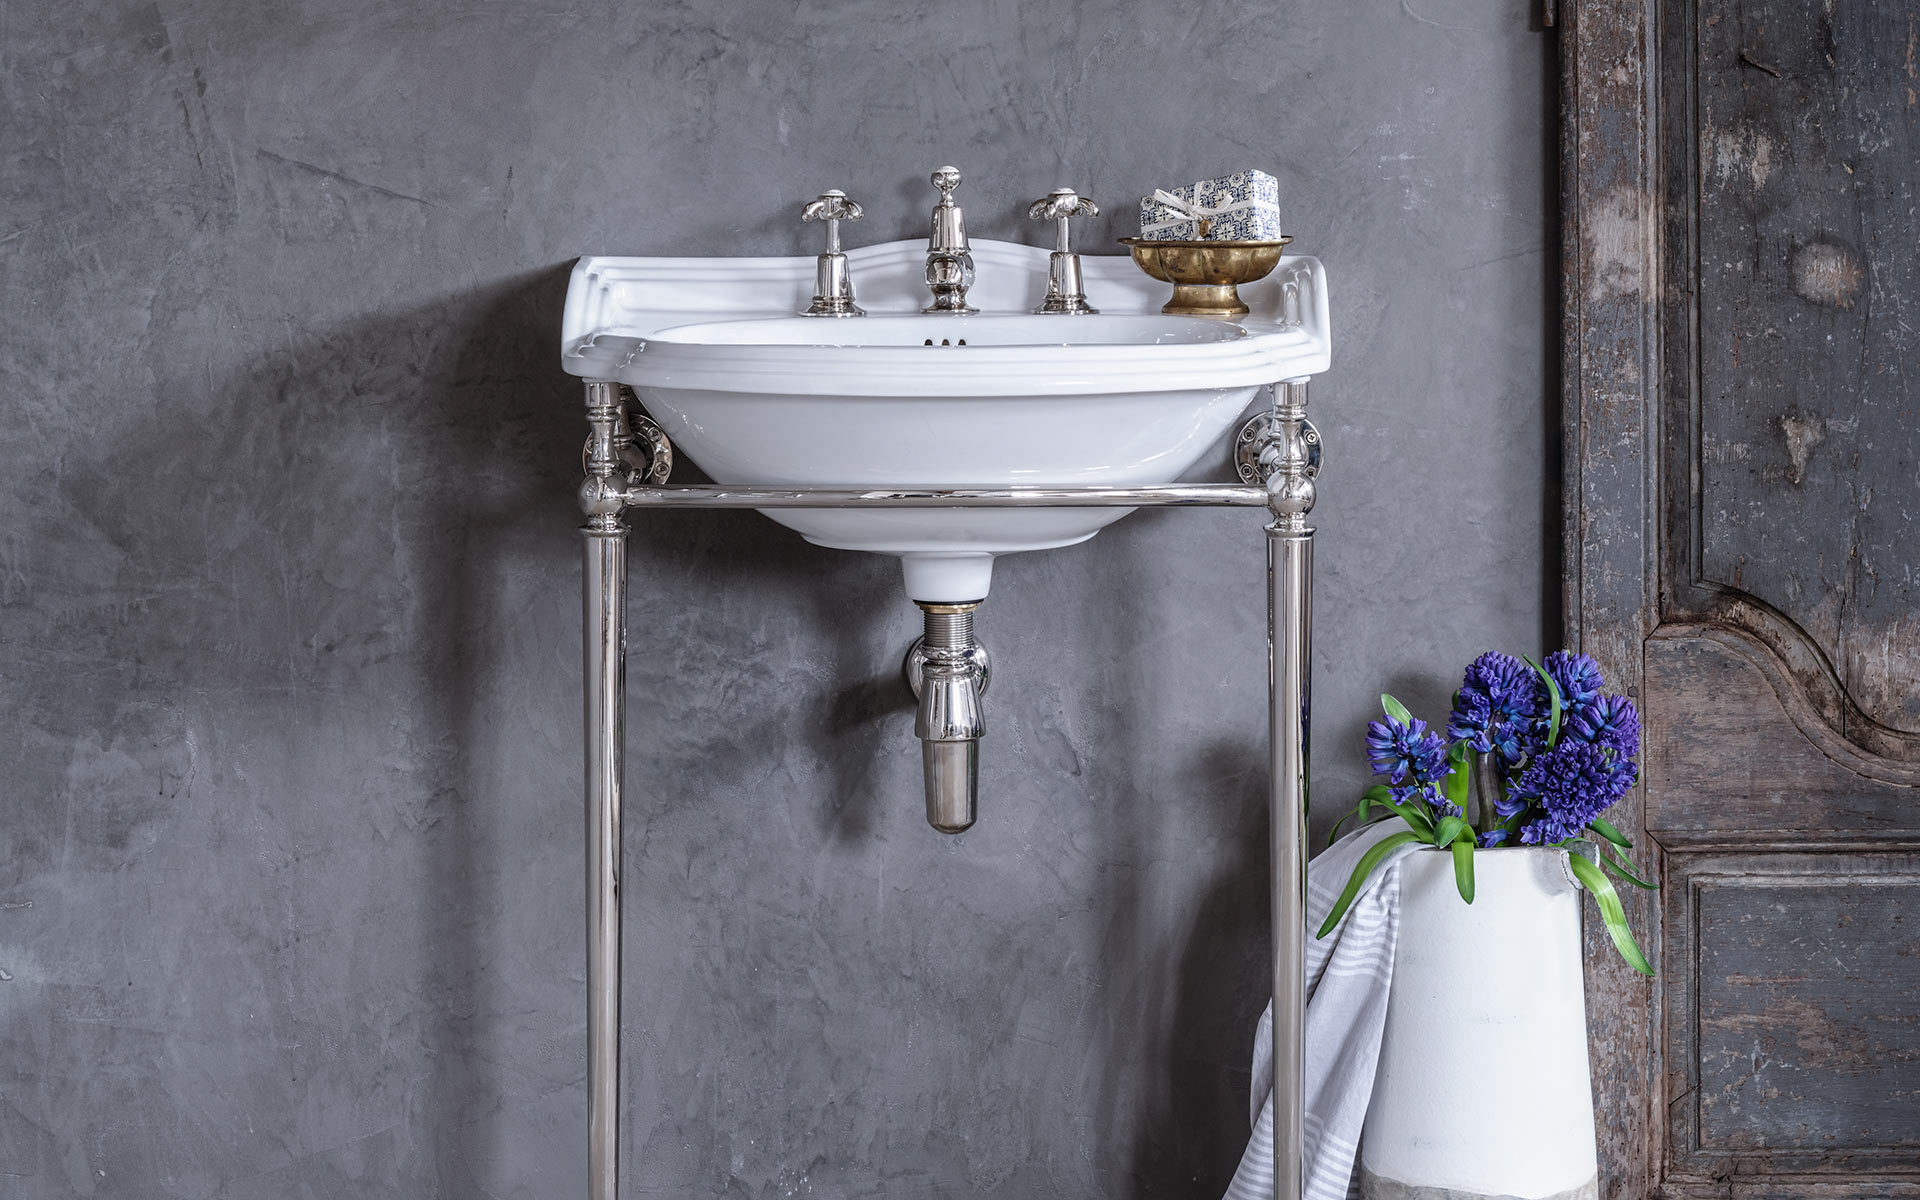 White luxury basin with fittings against polished plaster wall